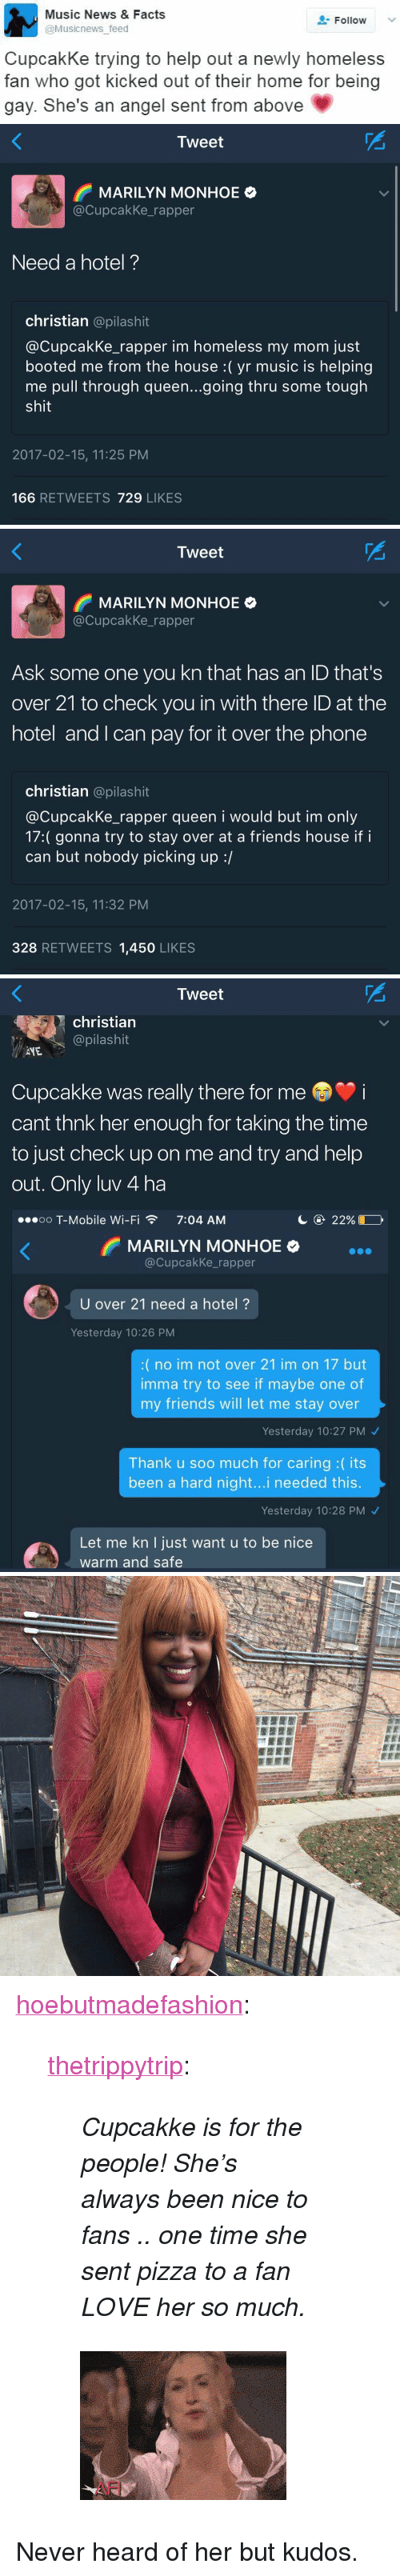 """Booted: Music News & Facts  @Musicnews feed  Follow  CupcakKe trying to help out a newly homeless  fan who got kicked out of their home for being  gay. She's an angel sent from above   Tweet  F MARILYN MONHOE  @CupcakKe_rapper  Need a hotel?  christian @pilashit  @CupcakKe_rapper im homeless my mom just  booted me from the house :( yr music is helping  me pull through queen...going thru some tough  shit  2017-02-15, 11:25 PM  166 RETWEETS 729 LIKES   Tweet  PS  MARILYN MONHOE  @CupcakKe_rapper  Ask some one you kn that has an ID that's  over 21 to check you in with there ID at the  hotel and I can pay for it over the phone  christian @pilashit  @CupcakKe_rapper queen i would but im only  17:( gonna try to stay over at a friends house if i  can but nobody picking up :/  2017-02-15, 11:32 PM  328 RETWEETS 1,450 LIKES   Tweet  christiann  @pilashit  AYE  Cupcakke was really there for me  cant thnk her enough for taking the timee  to just check up on me and try and help  out. Only luv 4 ha  ..oo T-Mobile Wi-Fi  7:04 AM  С @ 22%С  MARILYN MONHOE  @CupcakKe_rapper  U over 21 need a hotel?  Yesterday 10:26 PM  :(no im not over 21 im on 17 but  imma try to see if maybe one of  my friends will let me stay over  Yesterday 10:27 PM  Thank u soo much for caring :( its  been a hard night...i needed this  Yesterday 10:28 PM  Let me kn I just want u to be nice  warm and safe <p><a href=""""http://hoebutmadefashion.tumblr.com/post/157350917038/thetrippytrip-cupcakke-is-for-the-people"""" class=""""tumblr_blog"""">hoebutmadefashion</a>:</p>  <blockquote> <p><a href=""""http://thetrippytrip.tumblr.com/post/157346830331/cupcakke-is-for-the-people-shes-always-been"""" class=""""tumblr_blog"""">thetrippytrip</a>:</p> <blockquote><p><i>  Cupcakke is for the people!   She's always been nice to fans .. one time she sent pizza to a fan LOVE her so much. </i><br/></p></blockquote> <figure data-orig-height=""""186"""" data-orig-width=""""258"""" style=""""""""><img src=""""https://78.media.tumblr.com/cbb875916ac209babf7f8cafba550d3b/tum"""